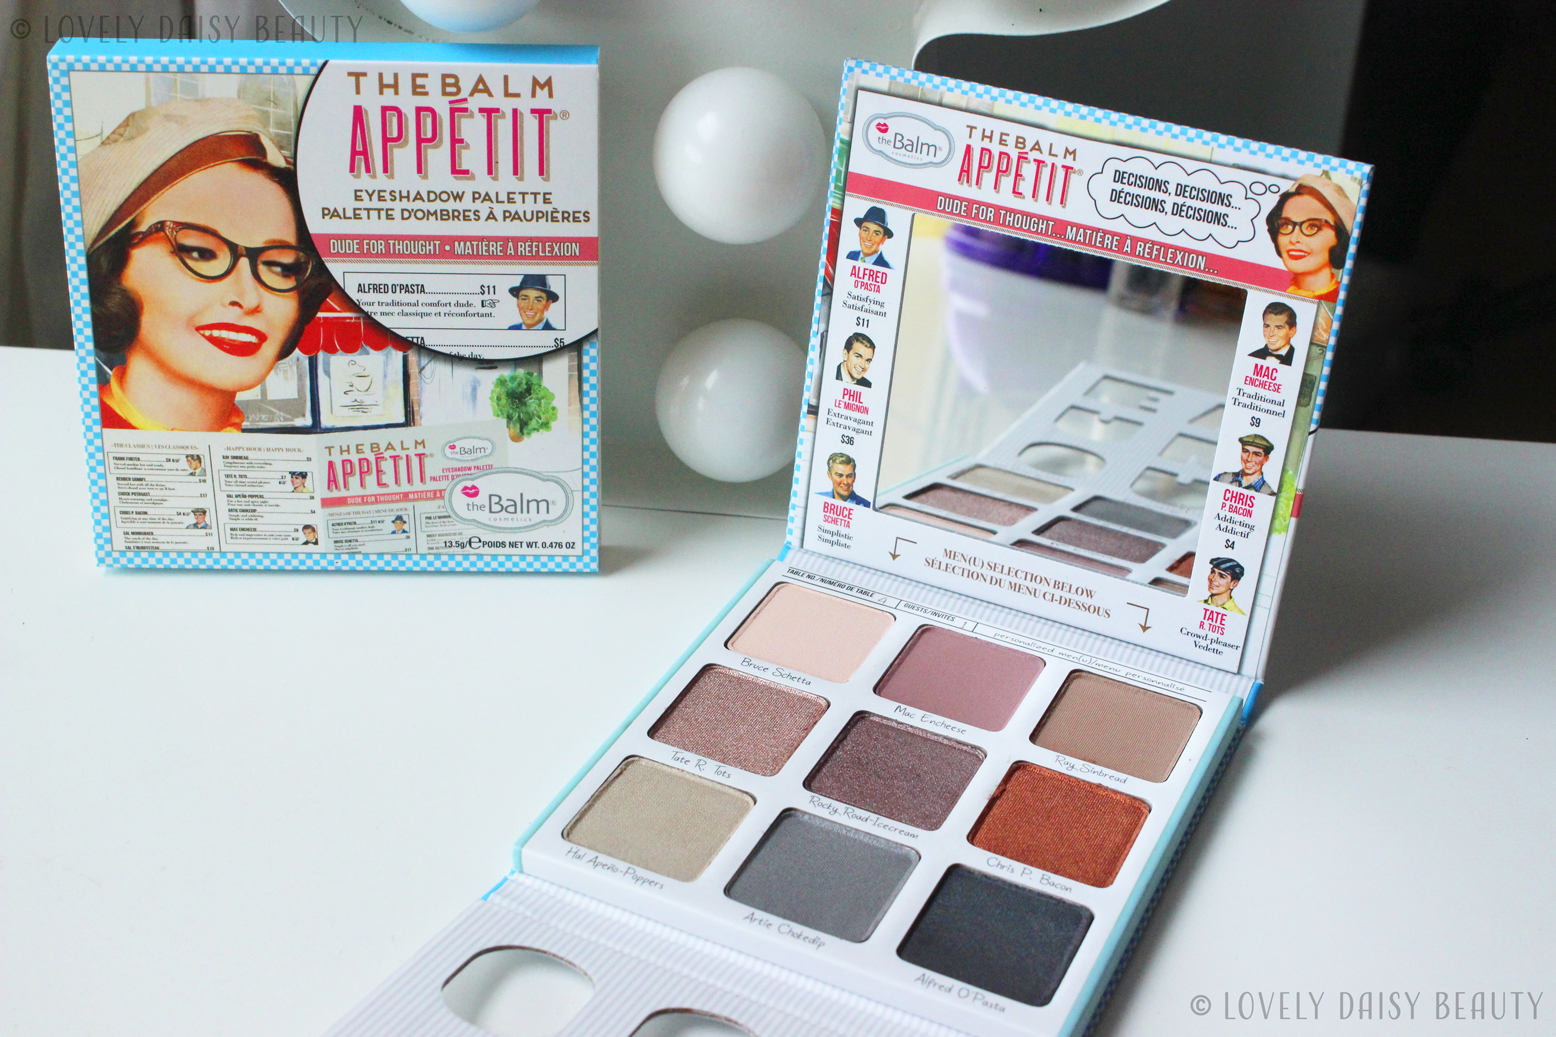 The-Balm-Appétit-Palette-3